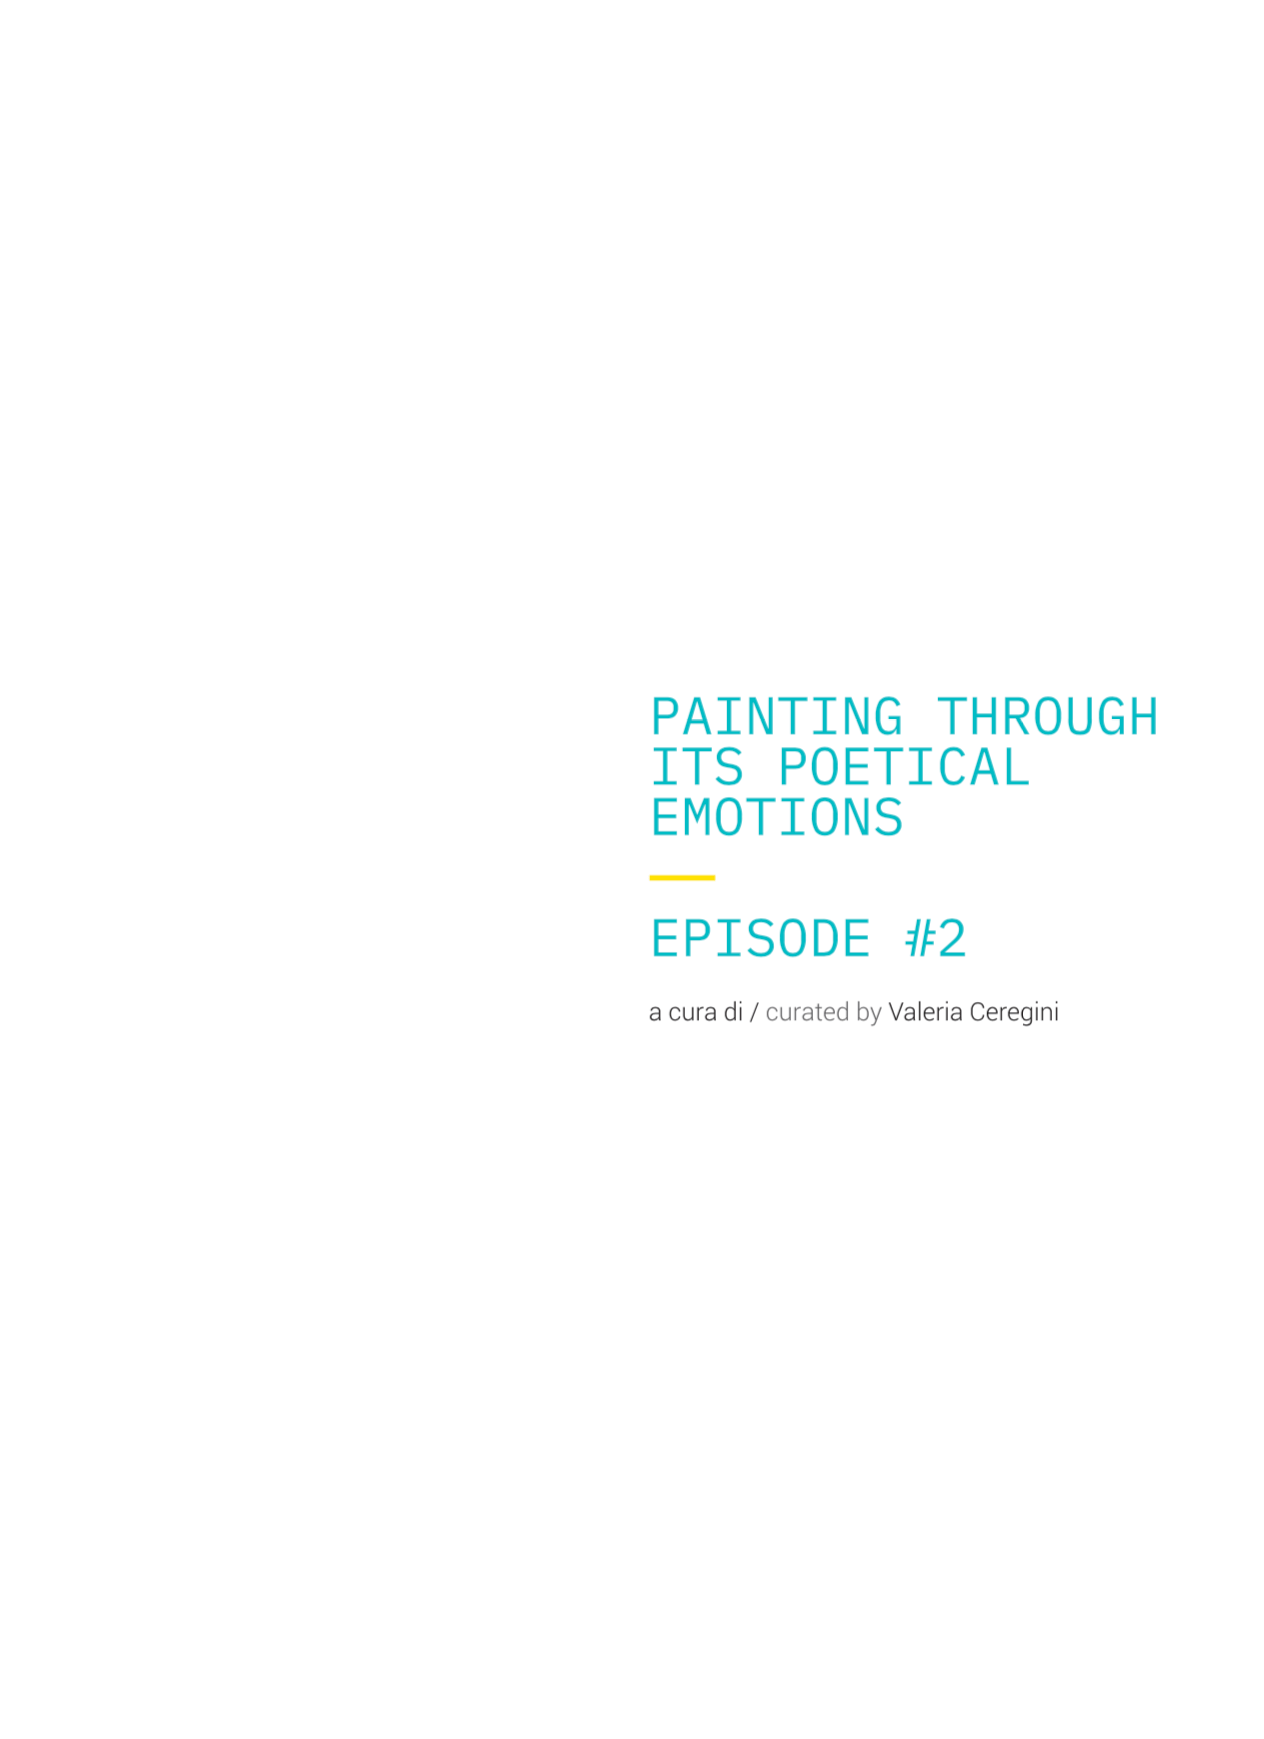 Painting through its poetical emotion - Episode #2